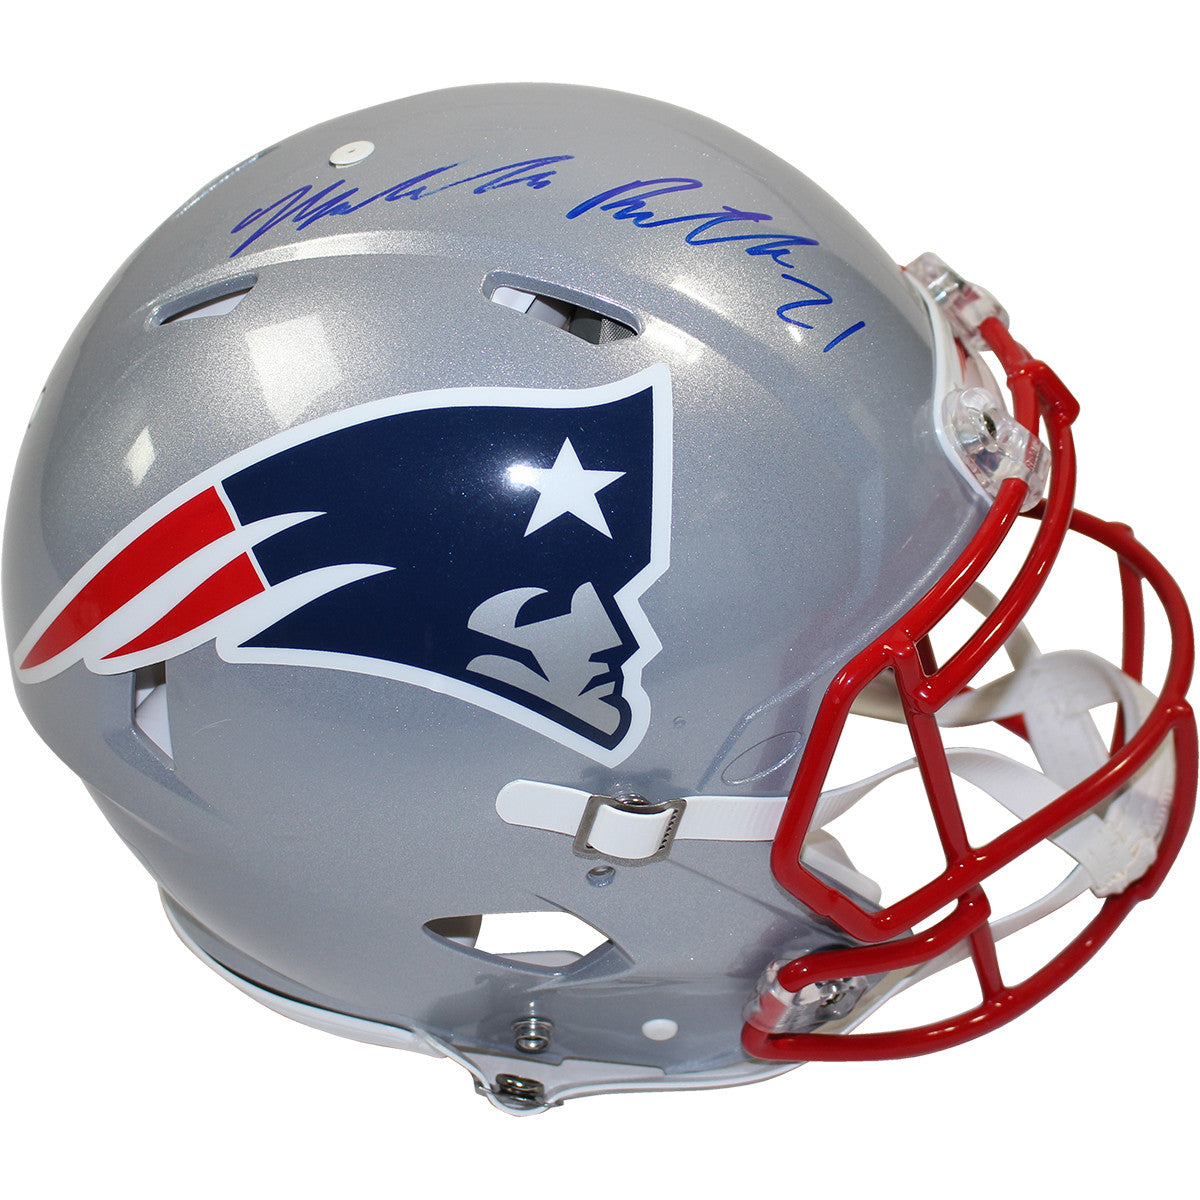 936876da6 Malcolm Butler Signed New England Patriots Full Size Speed Proline  Authentic Helmet ...